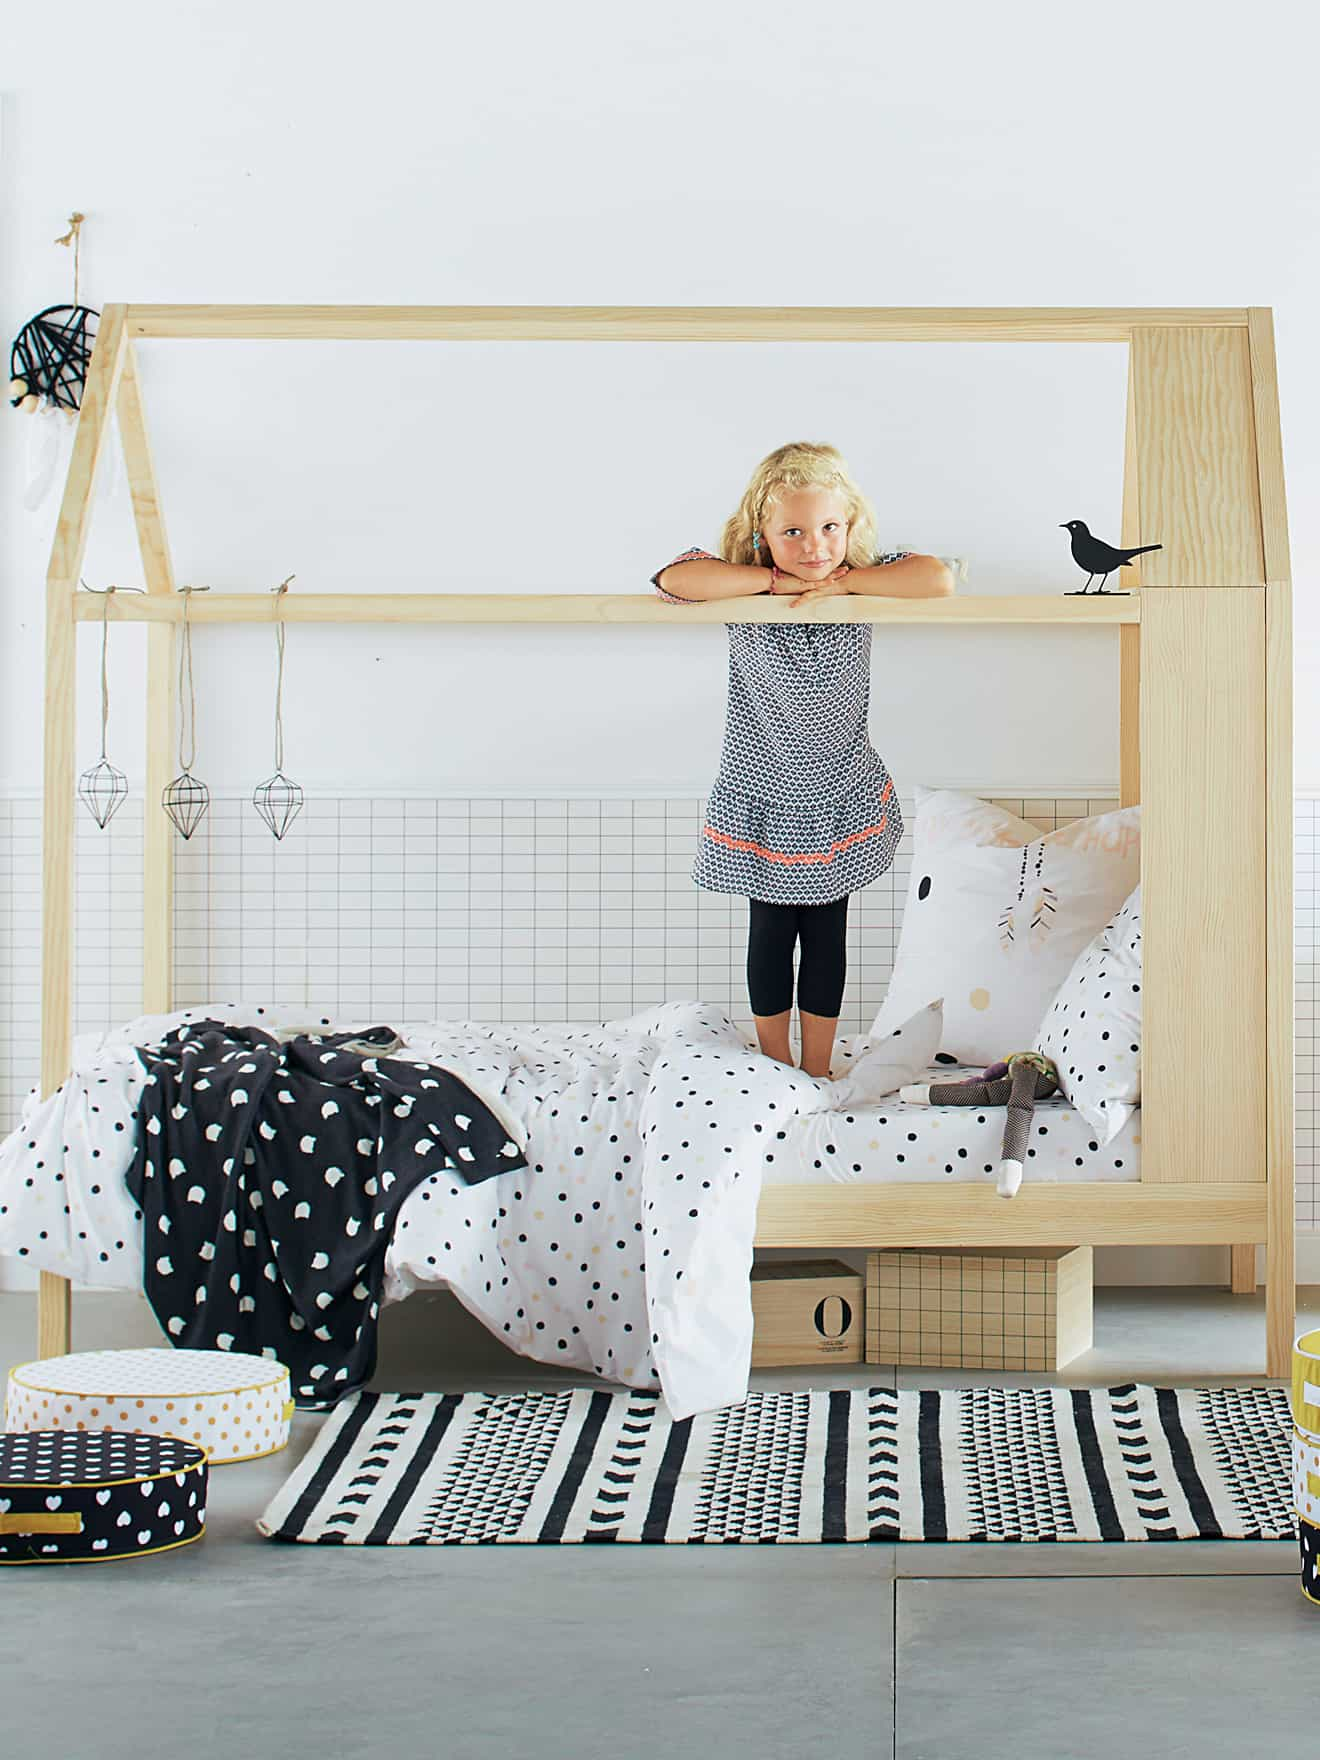 vertbaudet les nouveaut s d co pour la chambre enfant. Black Bedroom Furniture Sets. Home Design Ideas